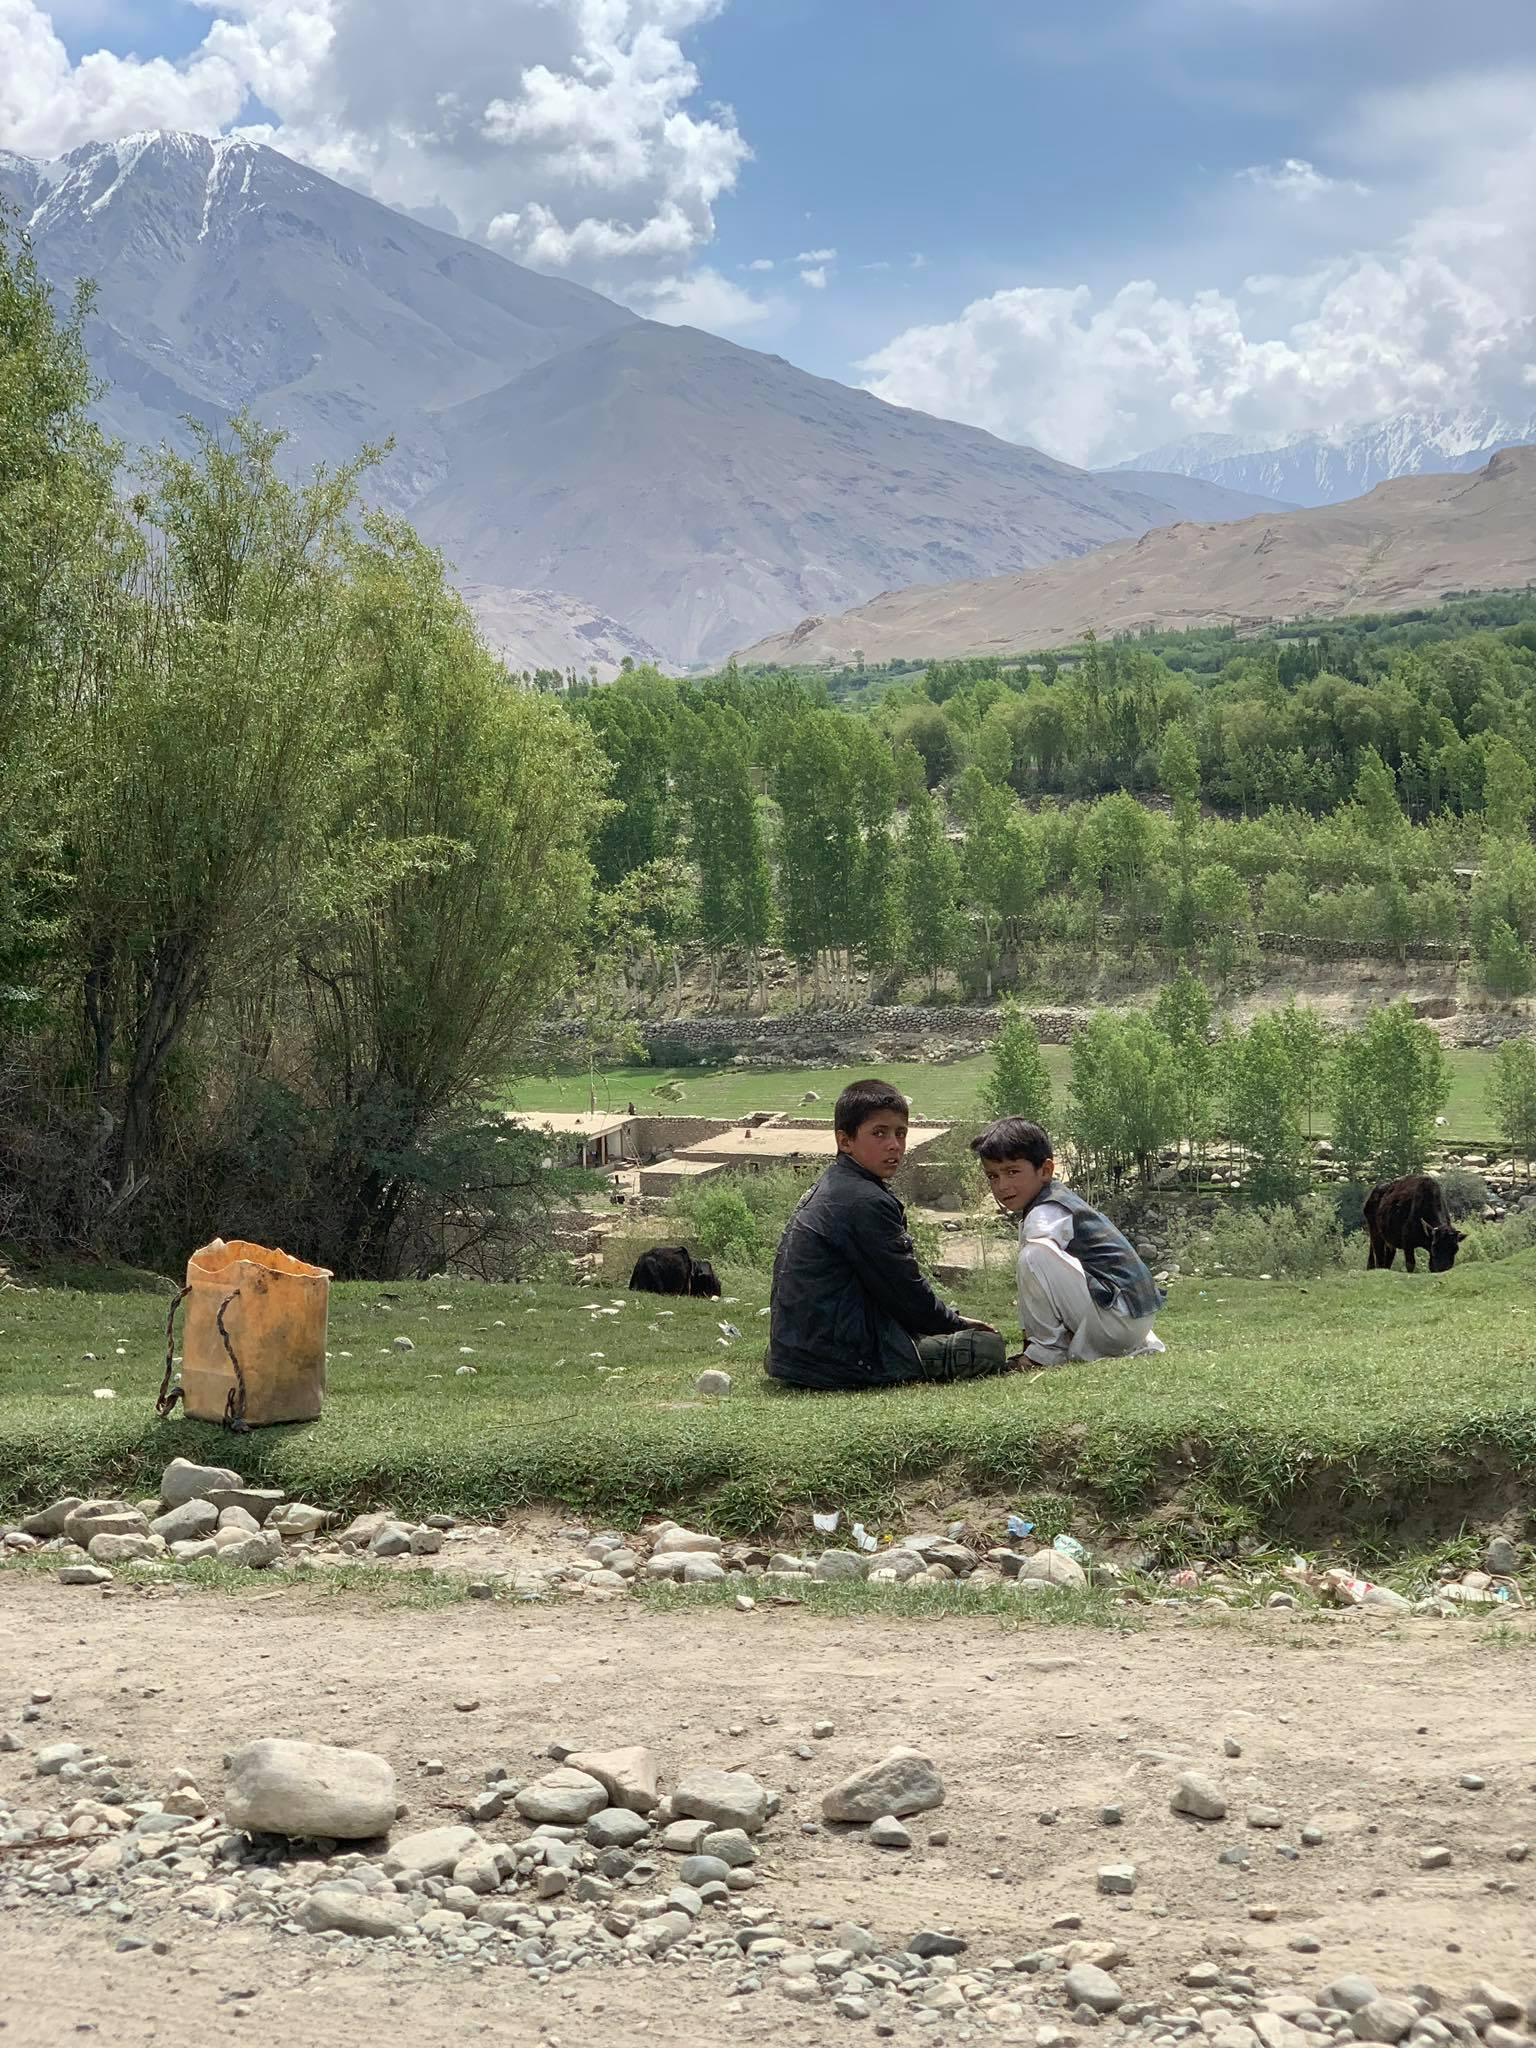 Kach Solo Travels in 2019 AFGHANISTAN, my 127th country30.jpg